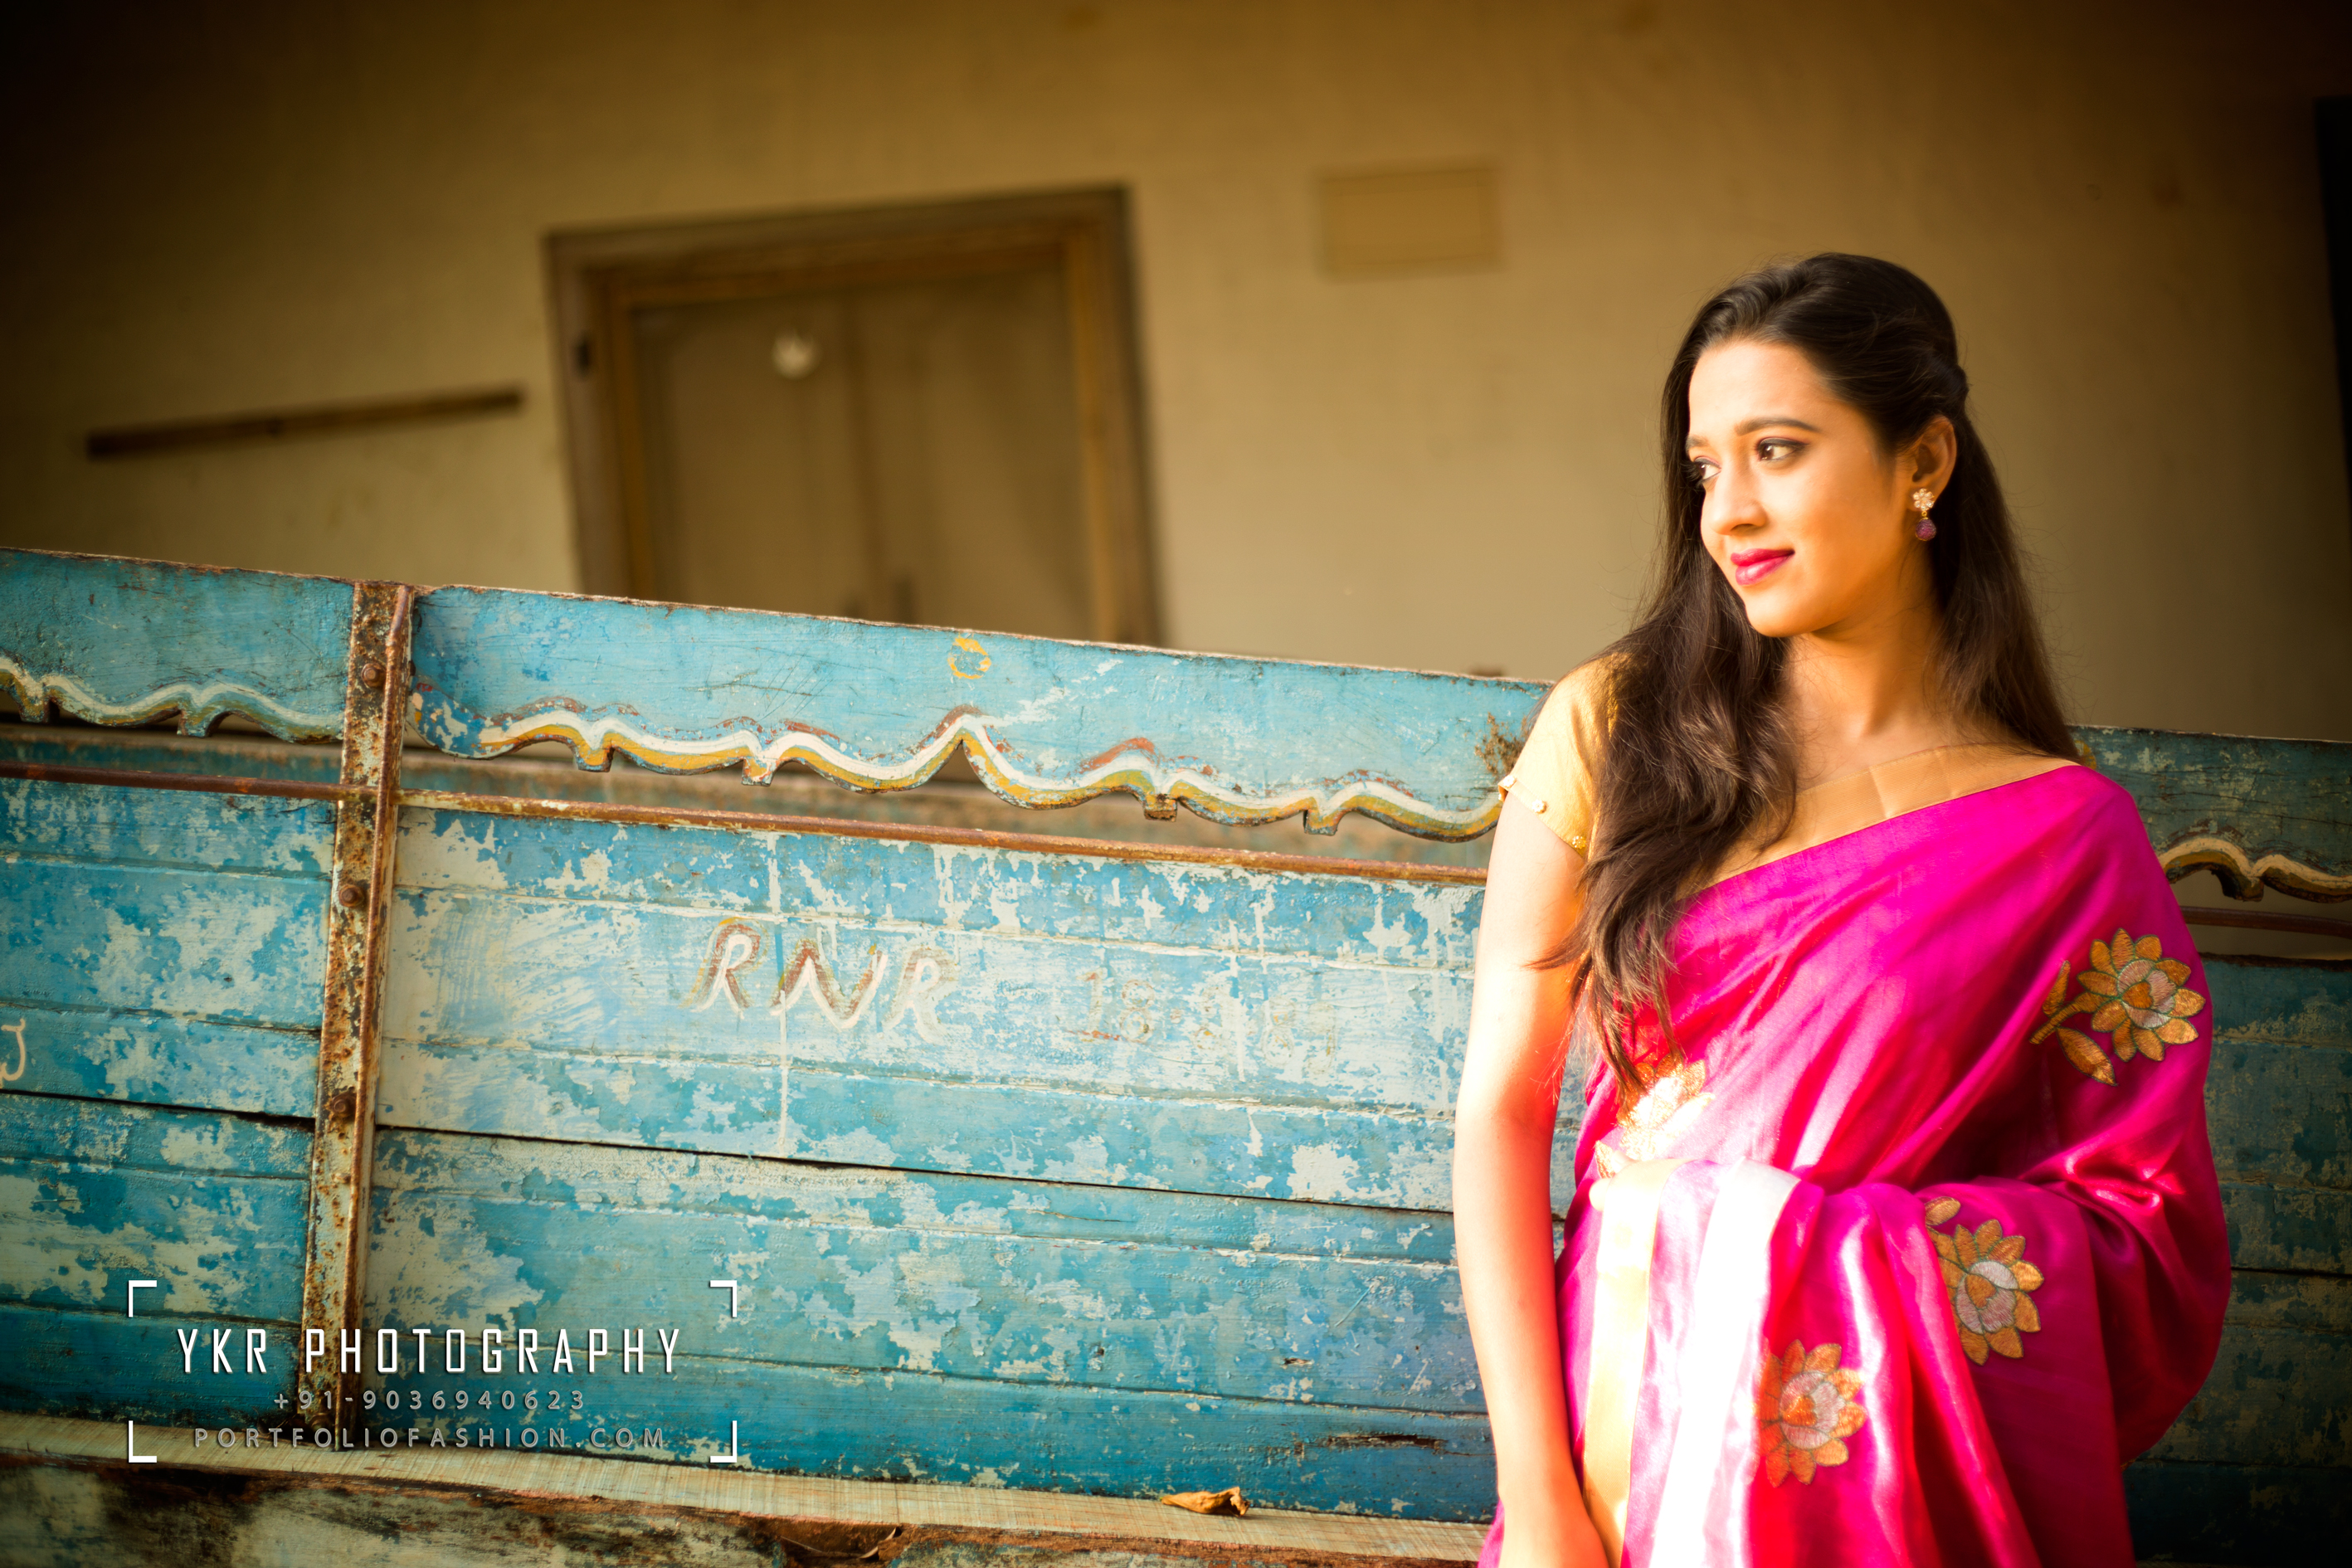 Bangalore Pretty Model, India's best model, traditional modeling in Bangalore, Modeling photography in Bangalore